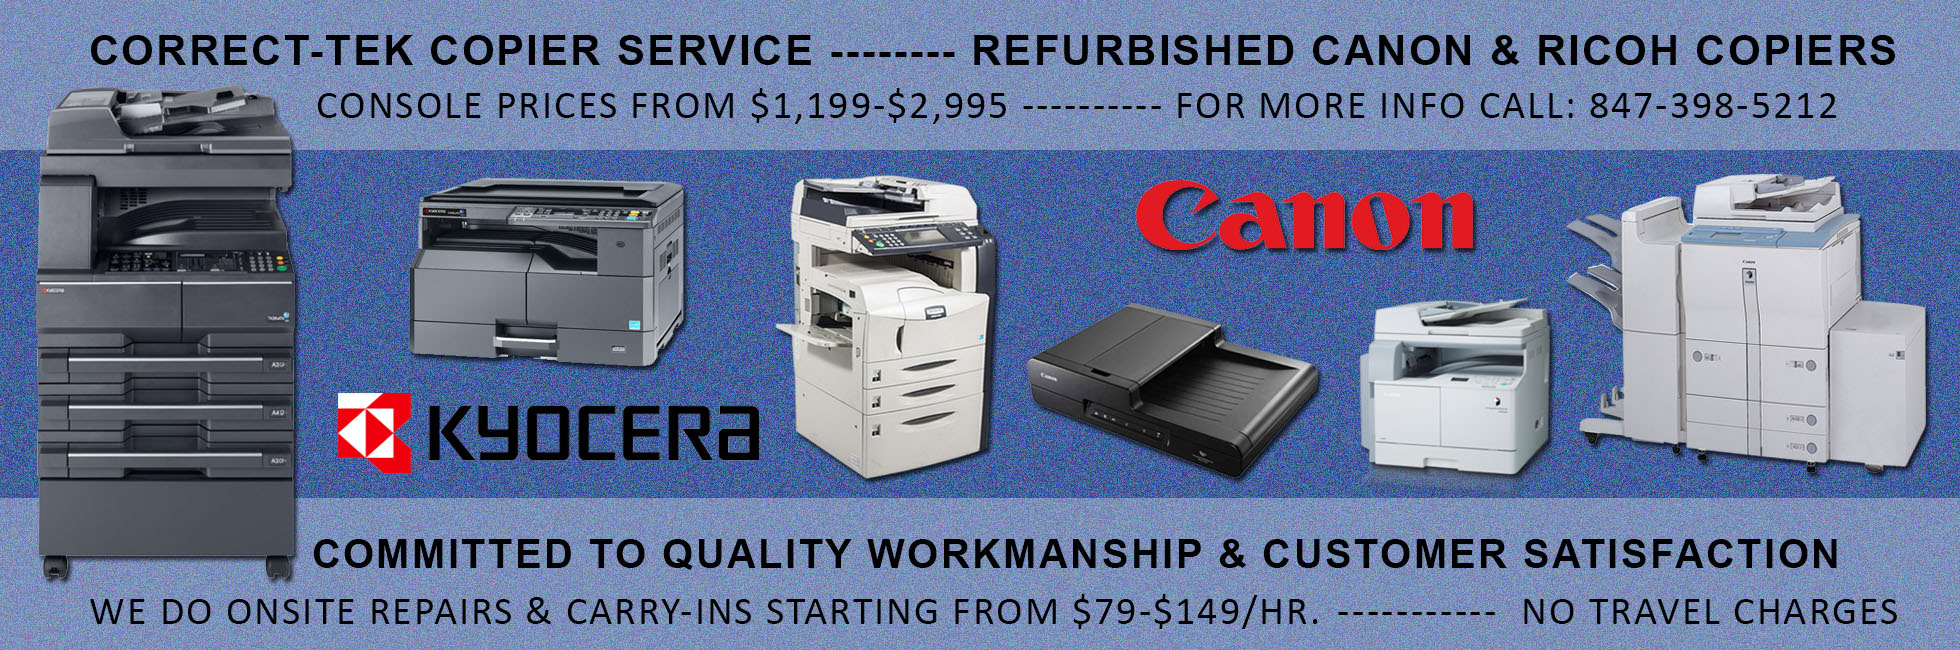 minolta copier repairs Arlington Heights